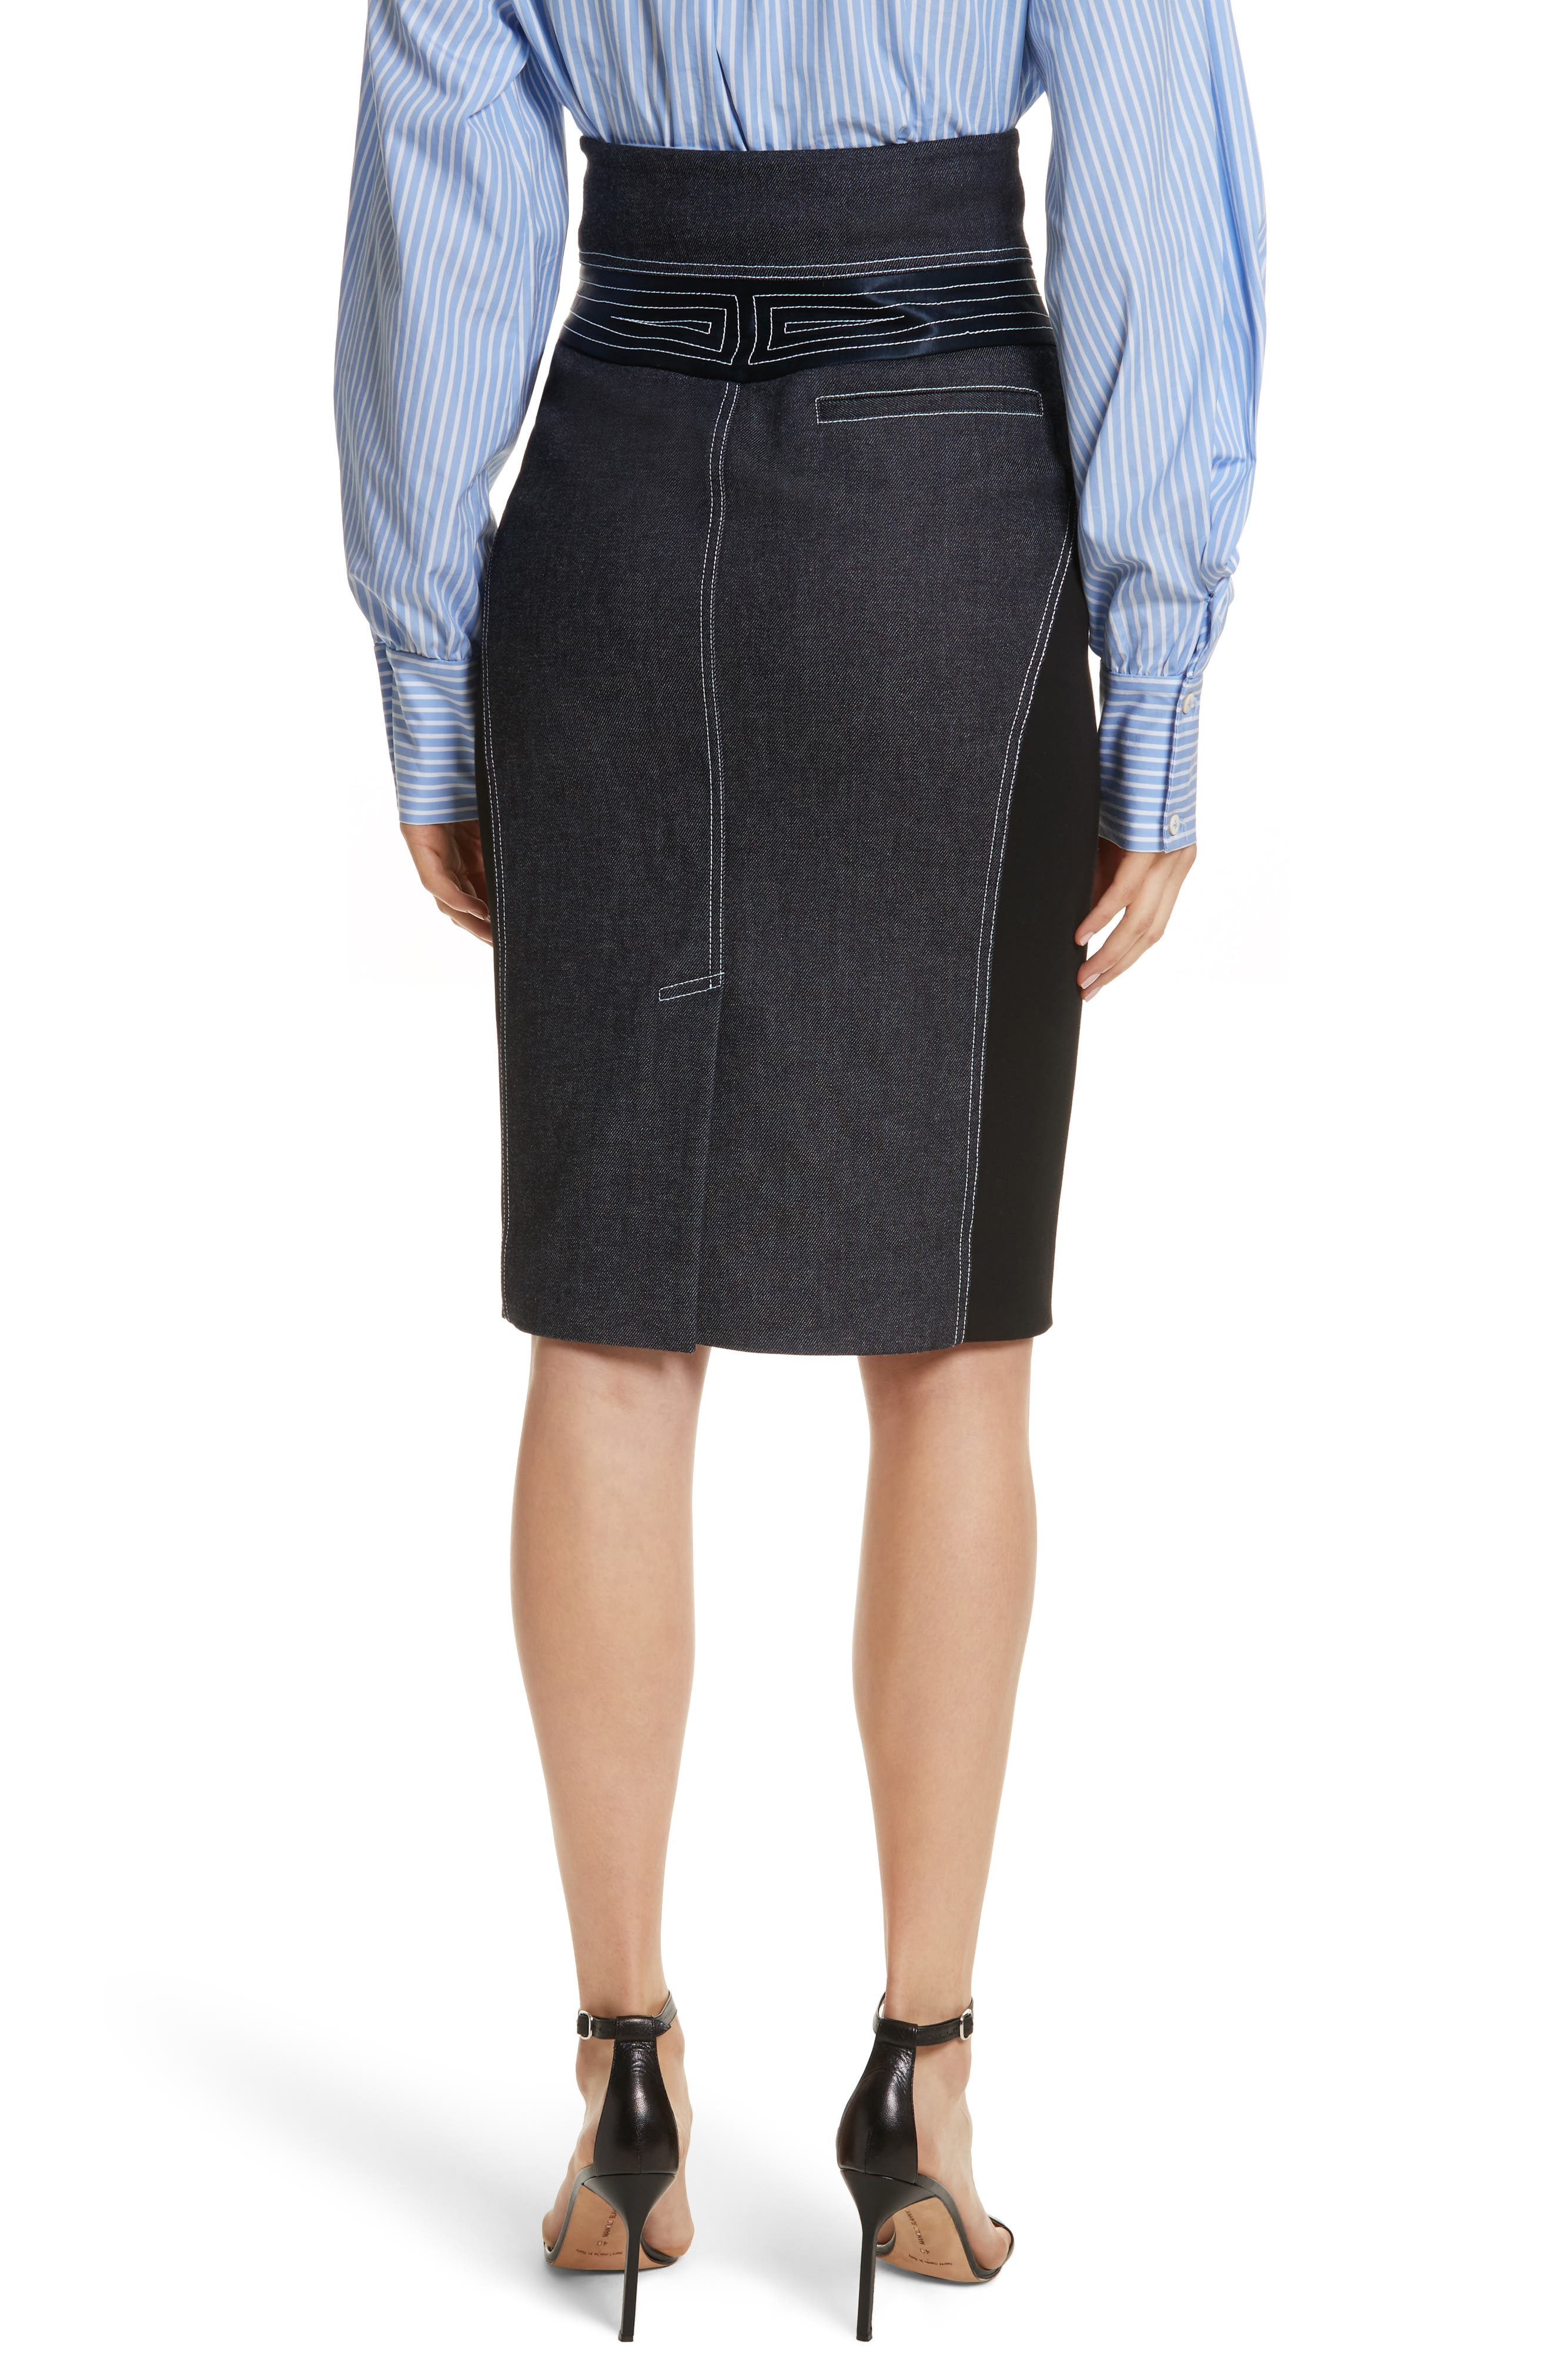 Diane von Furstenberg Denim Pencil Skirt,                             Alternate thumbnail 2, color,                             Indigo/ Black/ Alexander Navy